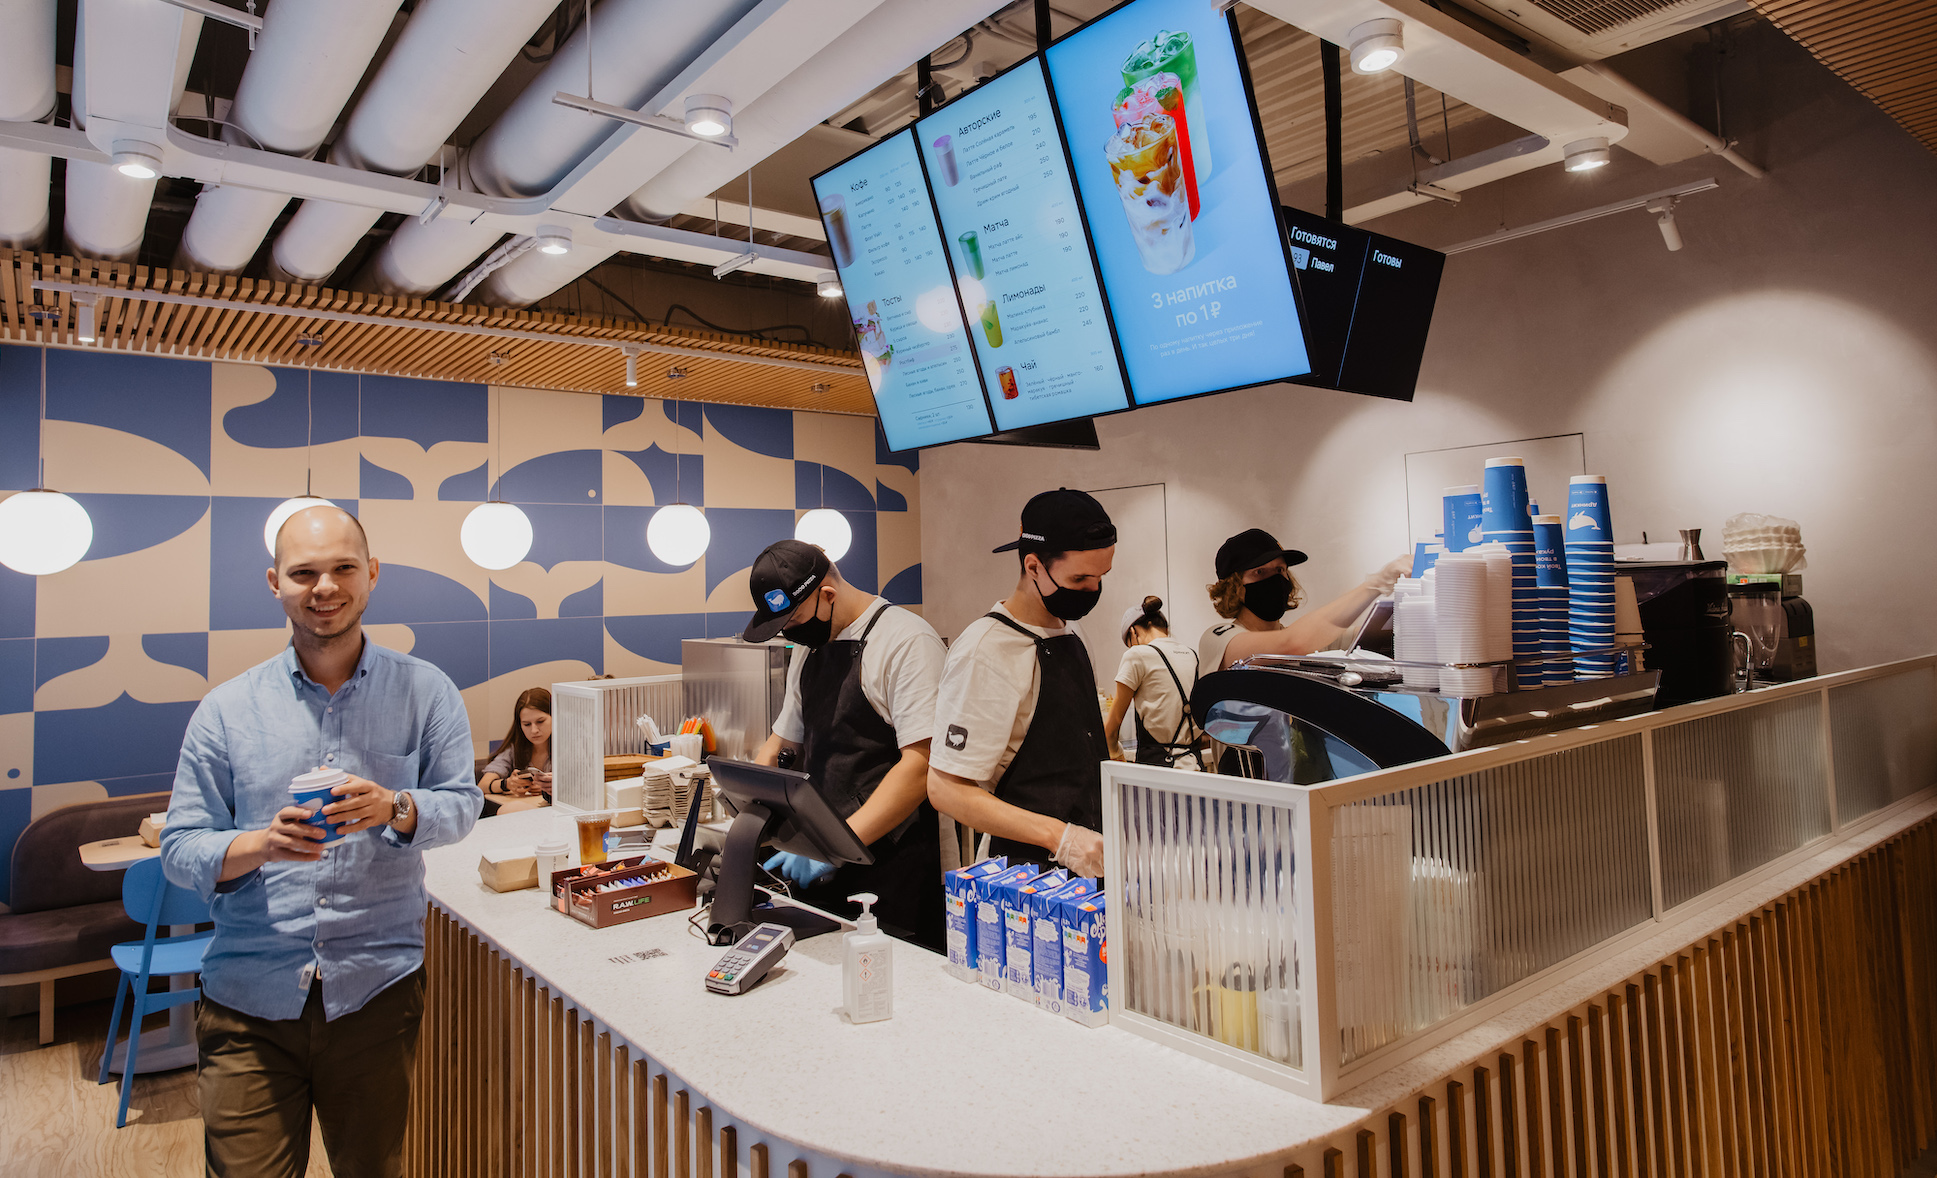 Drinkit: our vision for a digital-first coffee shop